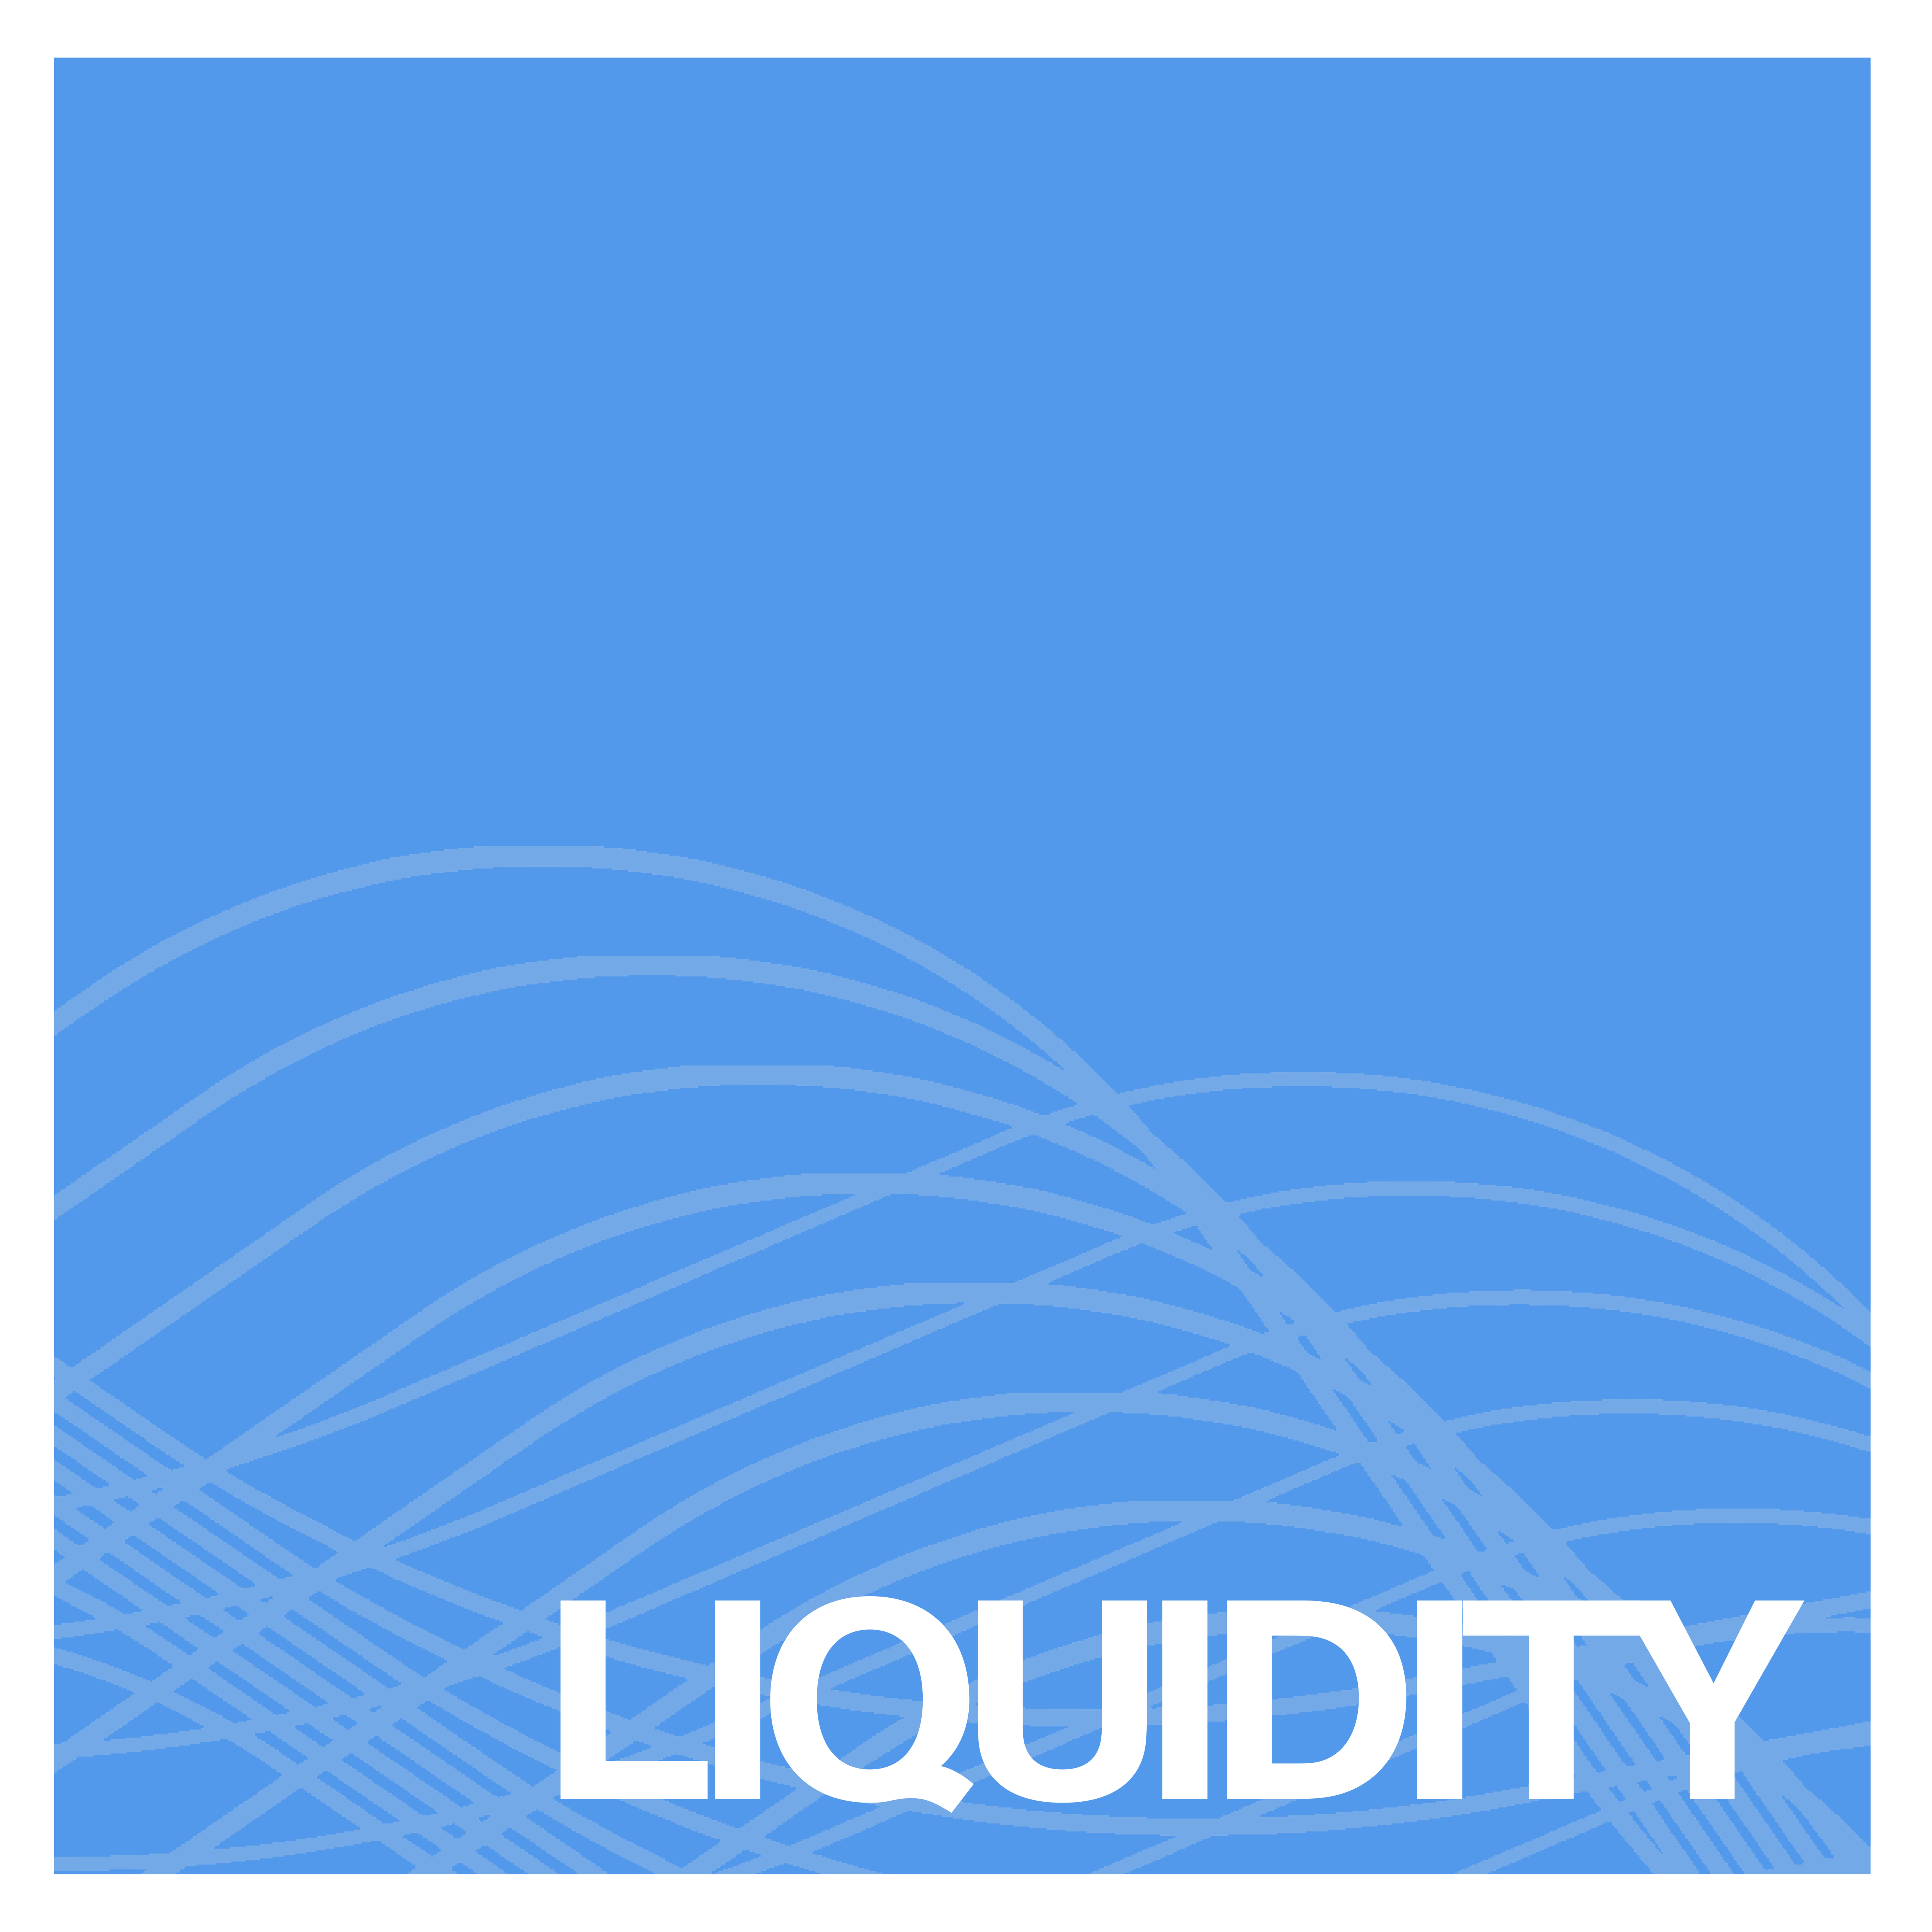 Liquidity Digital and Securitize Announce Strategic Partnership